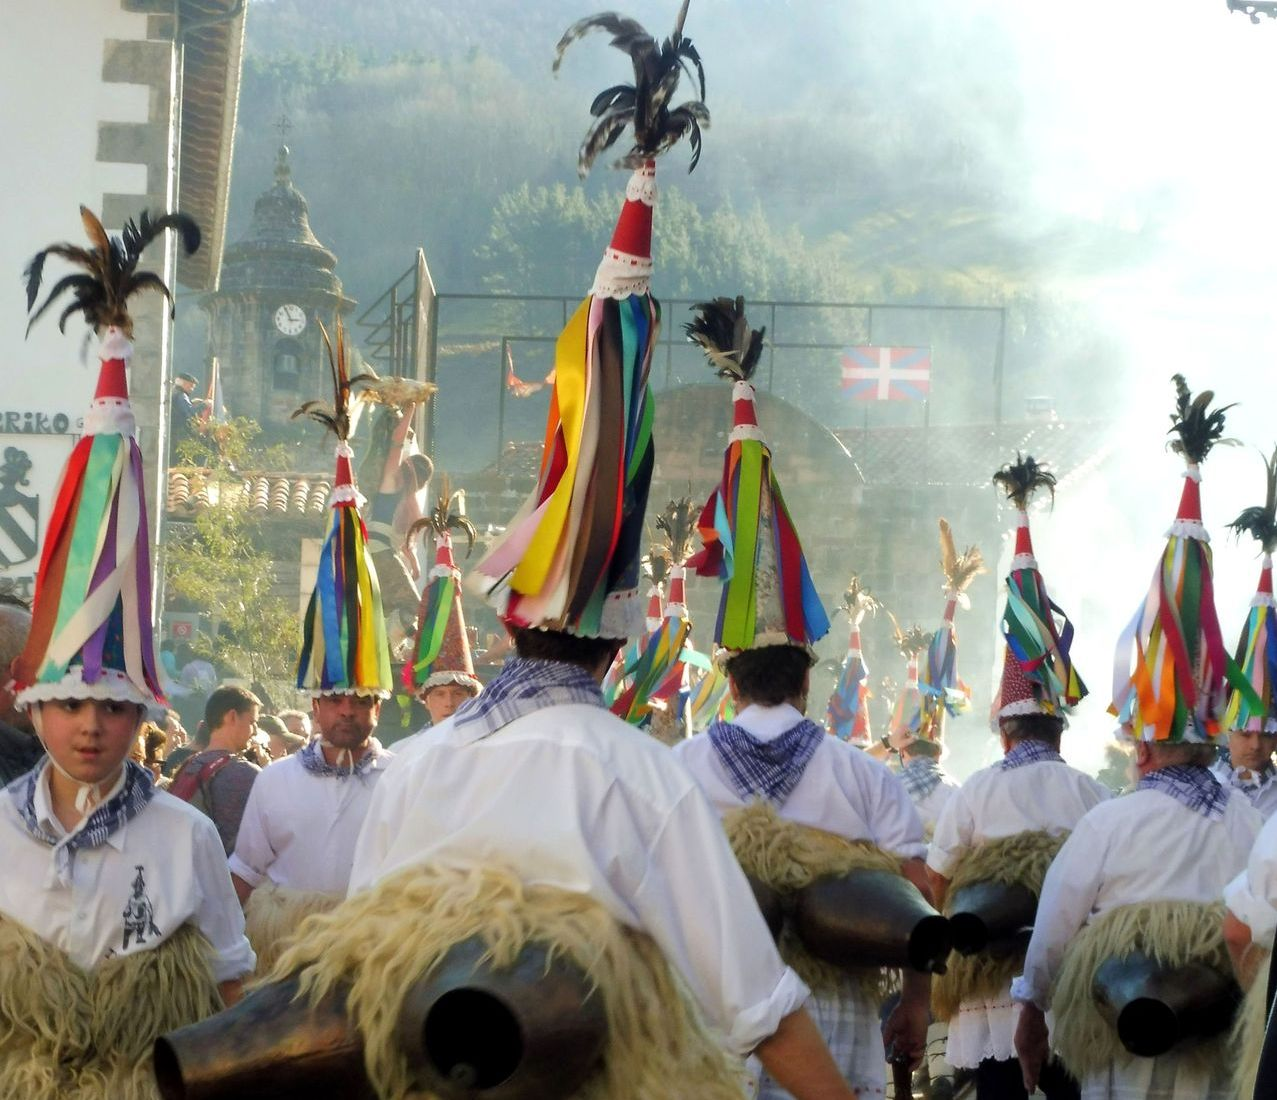 Basque ancient festival in the Pyrenees in the village of Zubieta